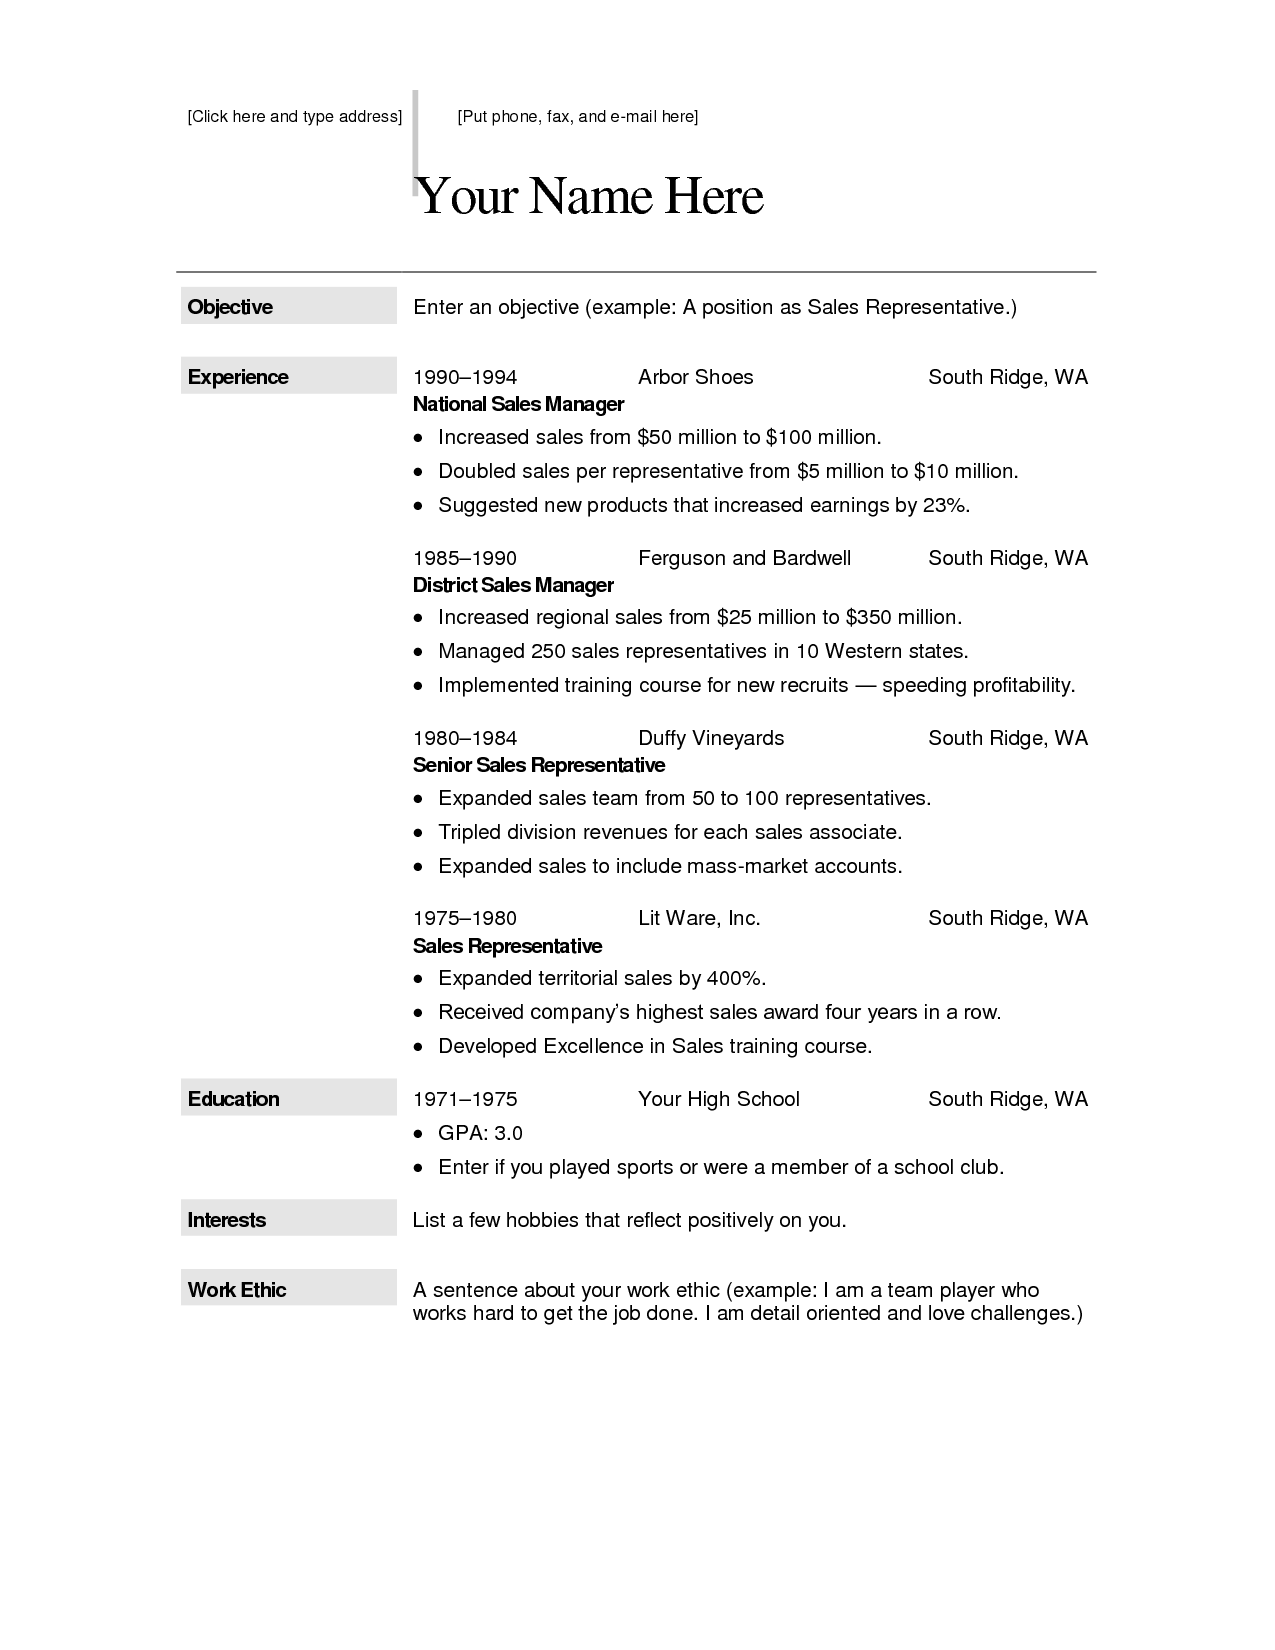 Free Mac Resume Templates Free Creative Resume Templates For Macfree Creative Resume